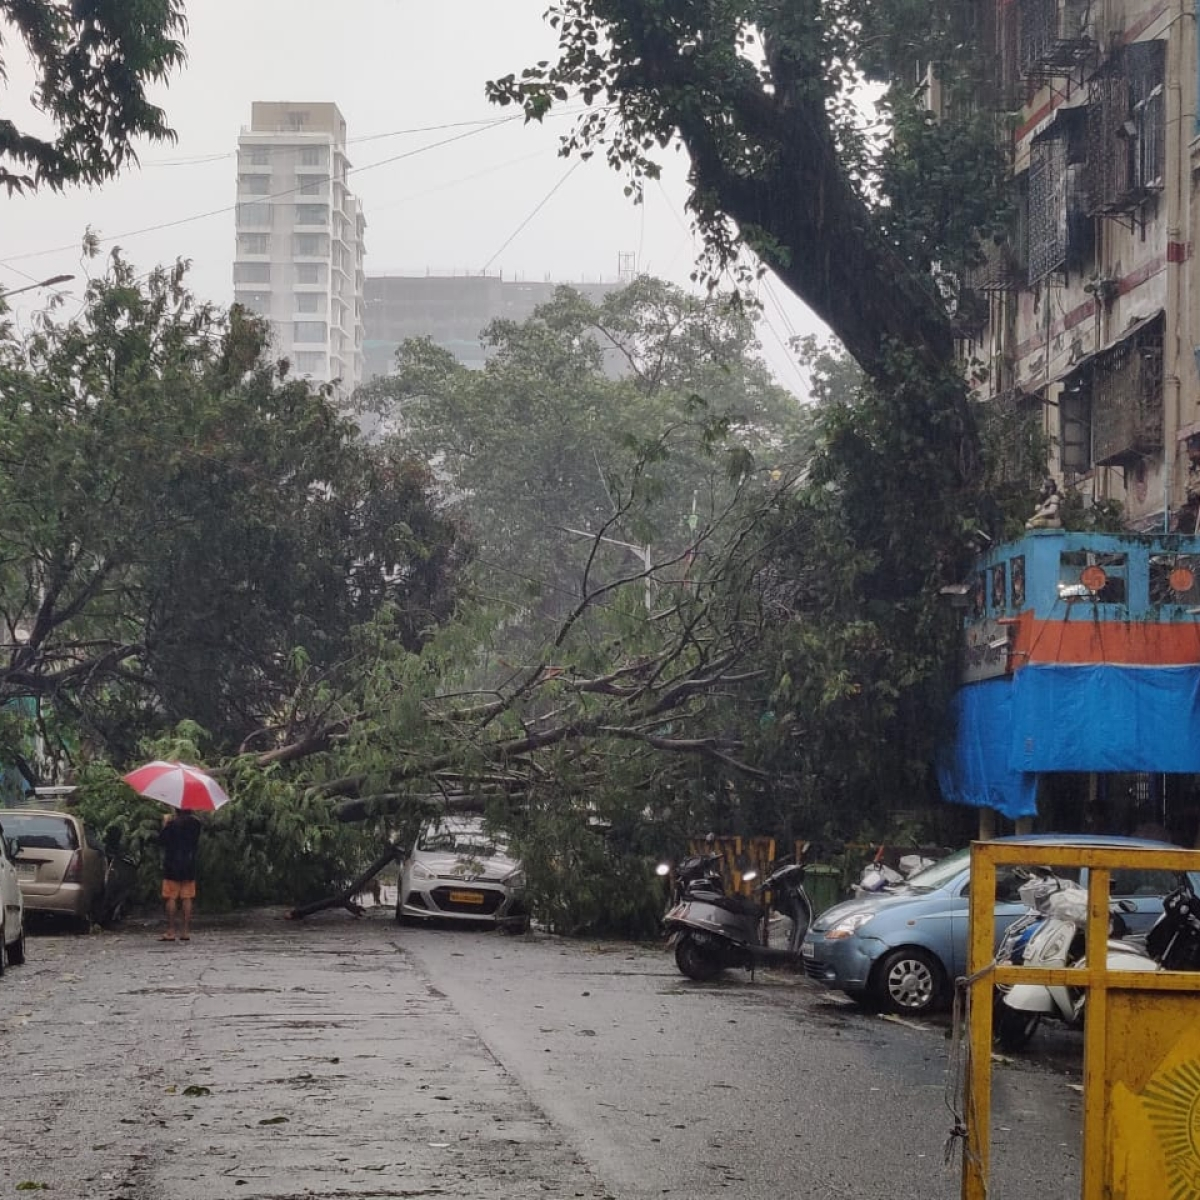 Full list of BMC schools with addresses which are serving as Shelter Homes